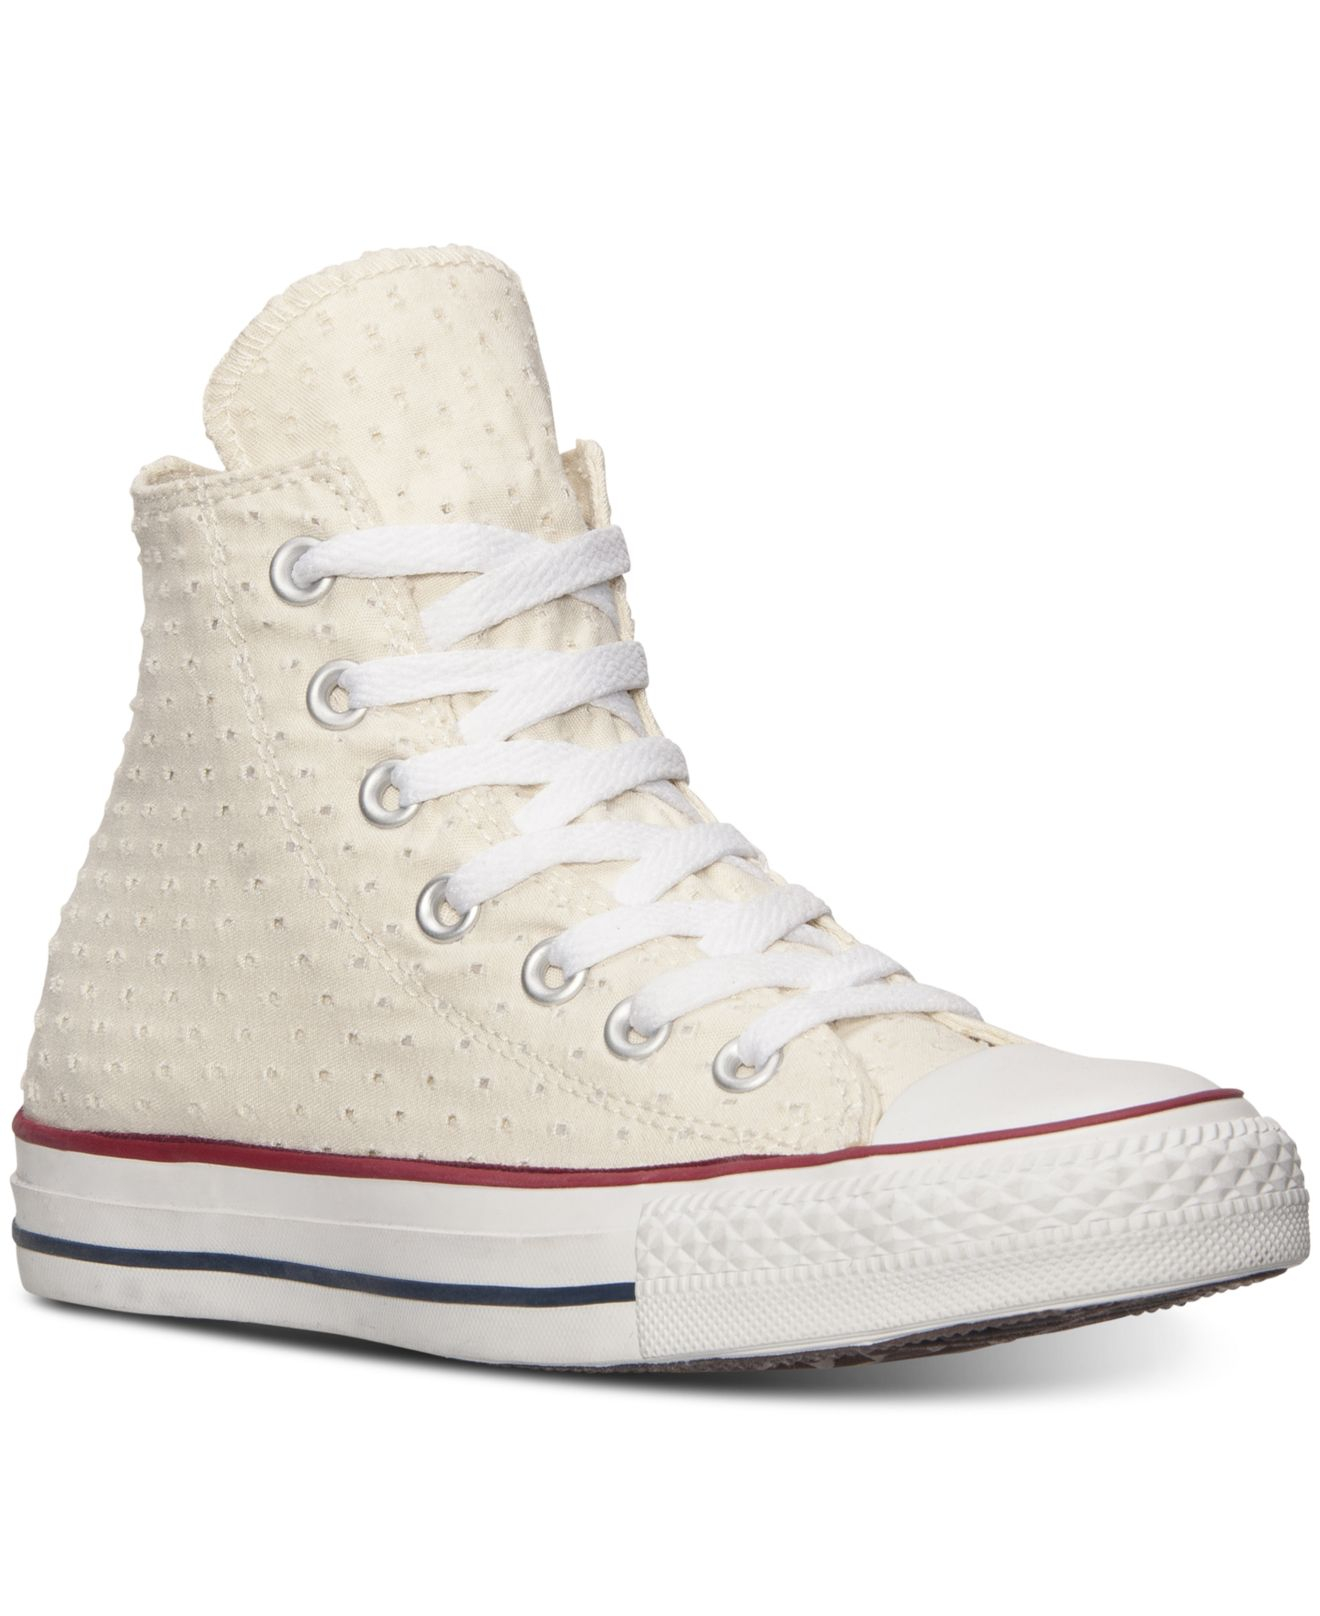 b2982c96b88c24 Gallery. Previously sold at  Macy s · Women s Converse Chuck Taylor ...